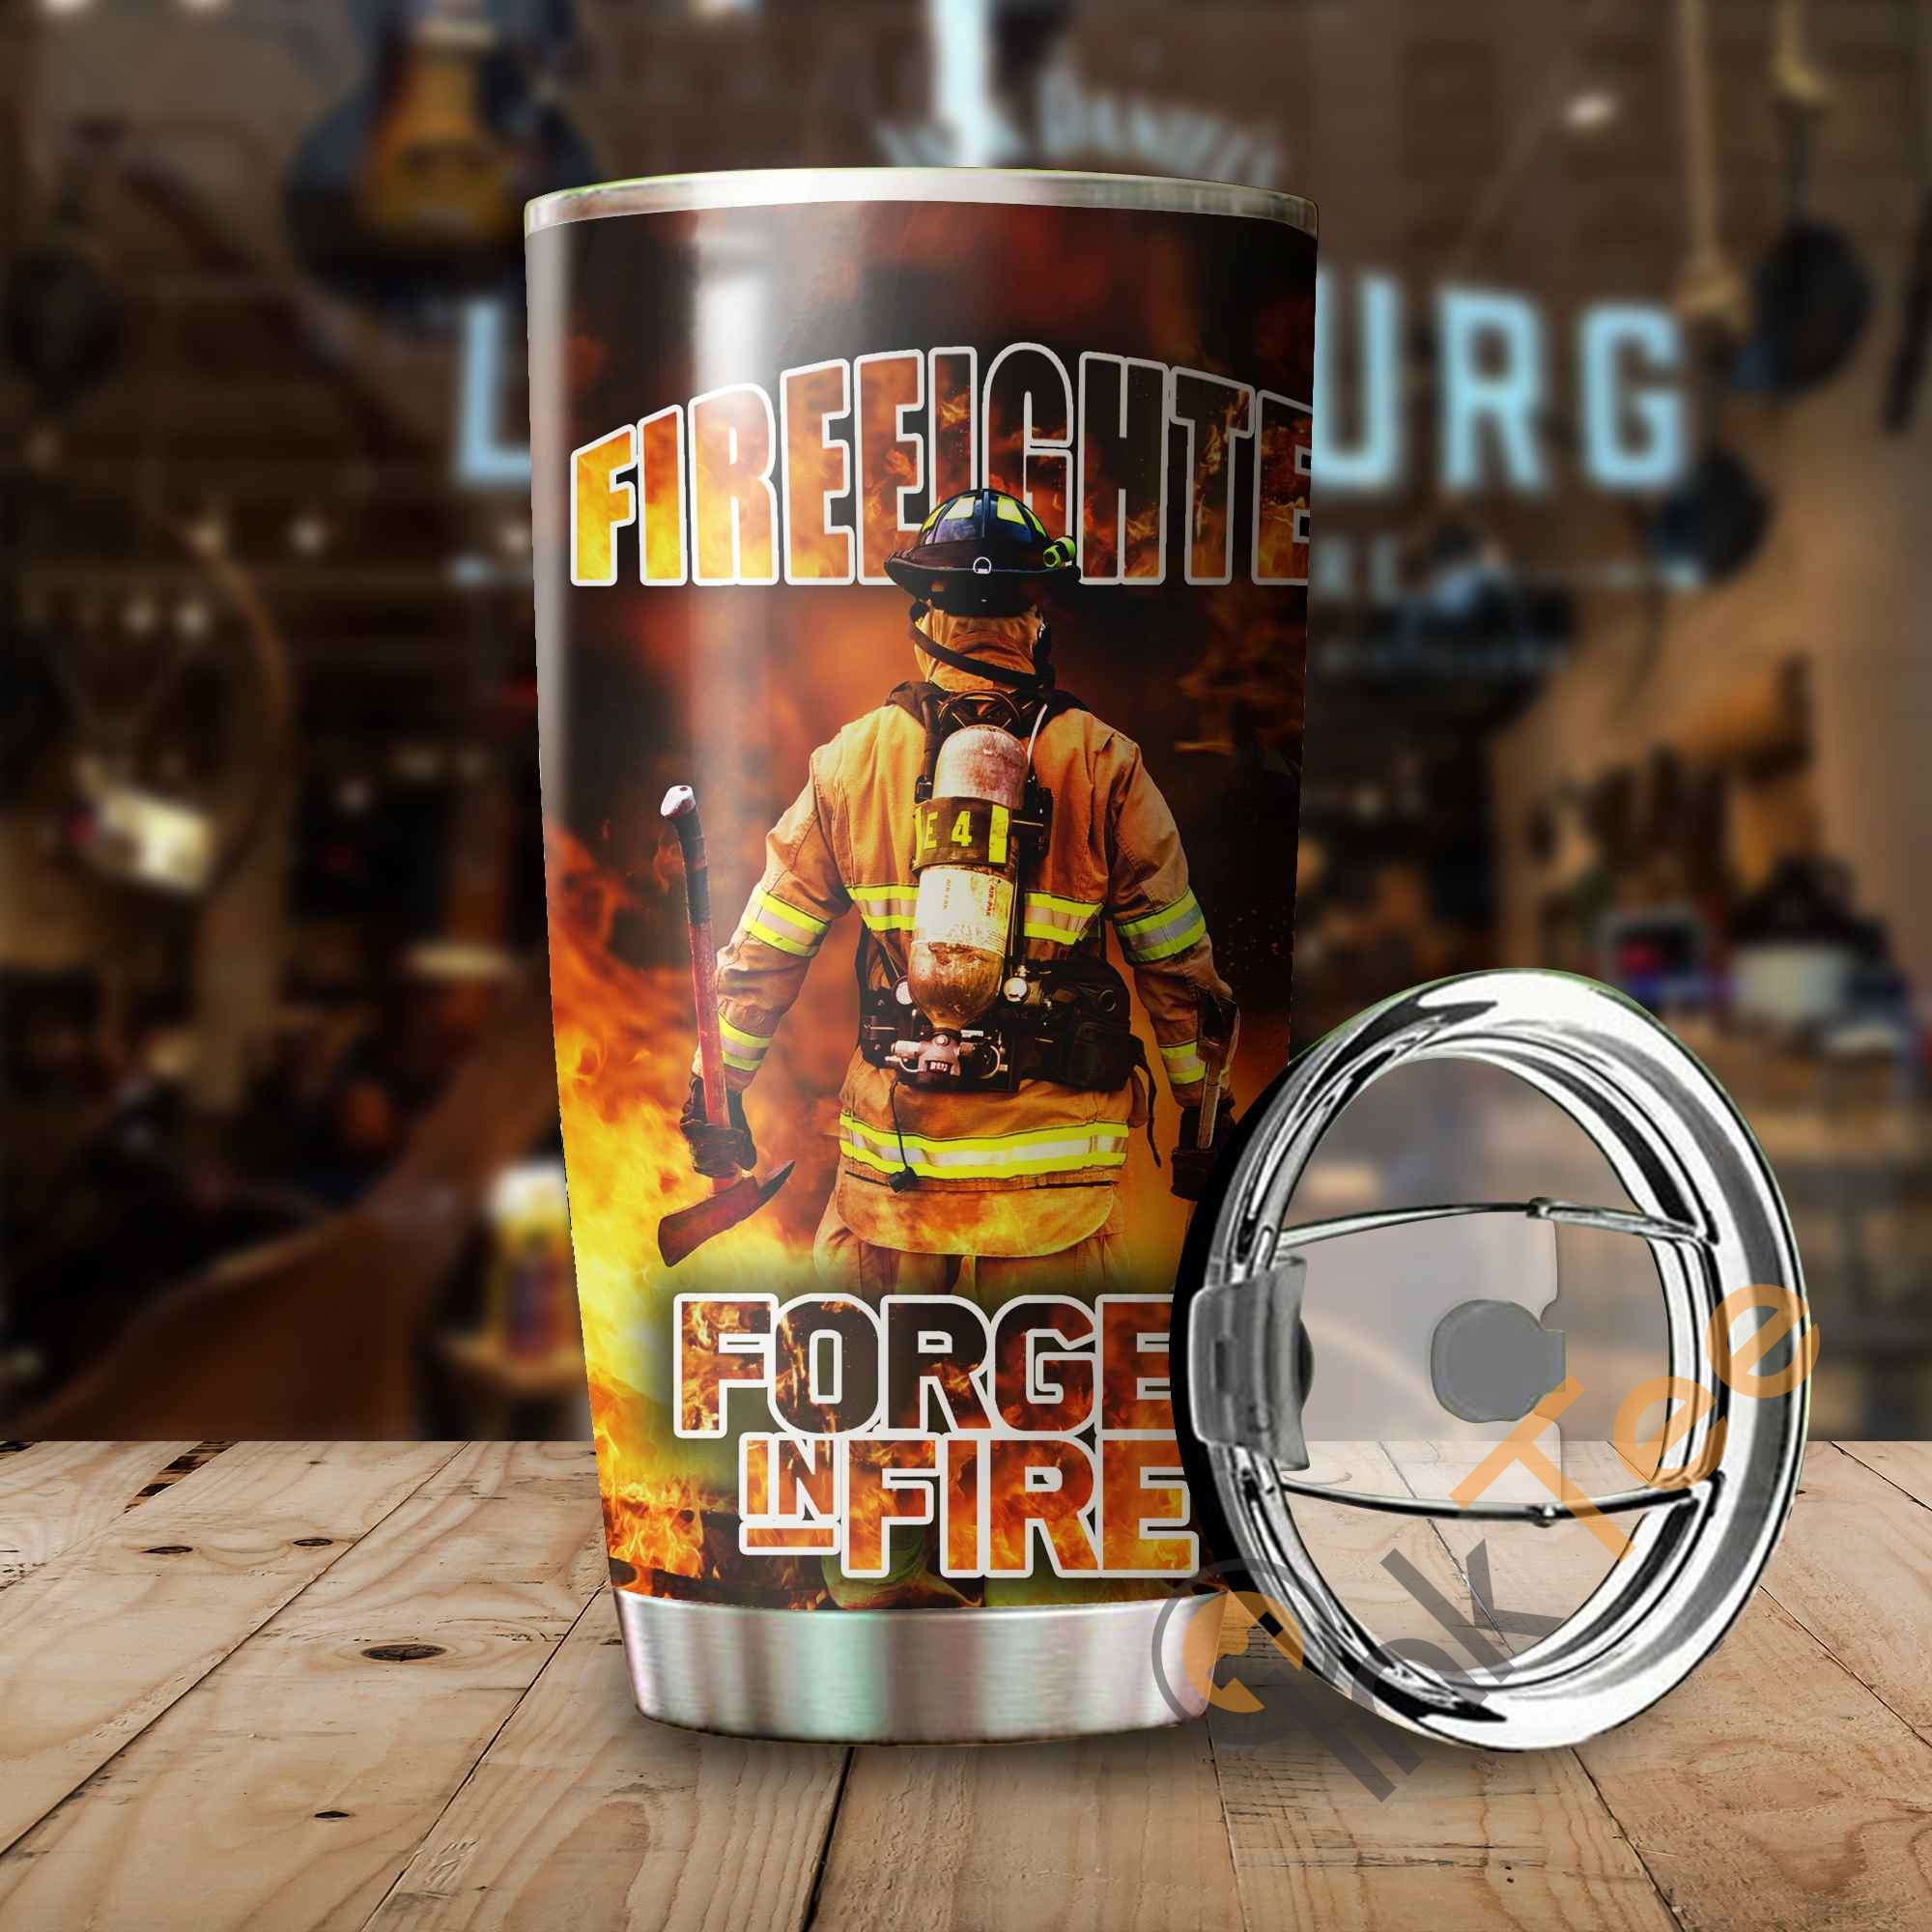 Firefighter ' Forged In Fire Stainless Steel Tumbler